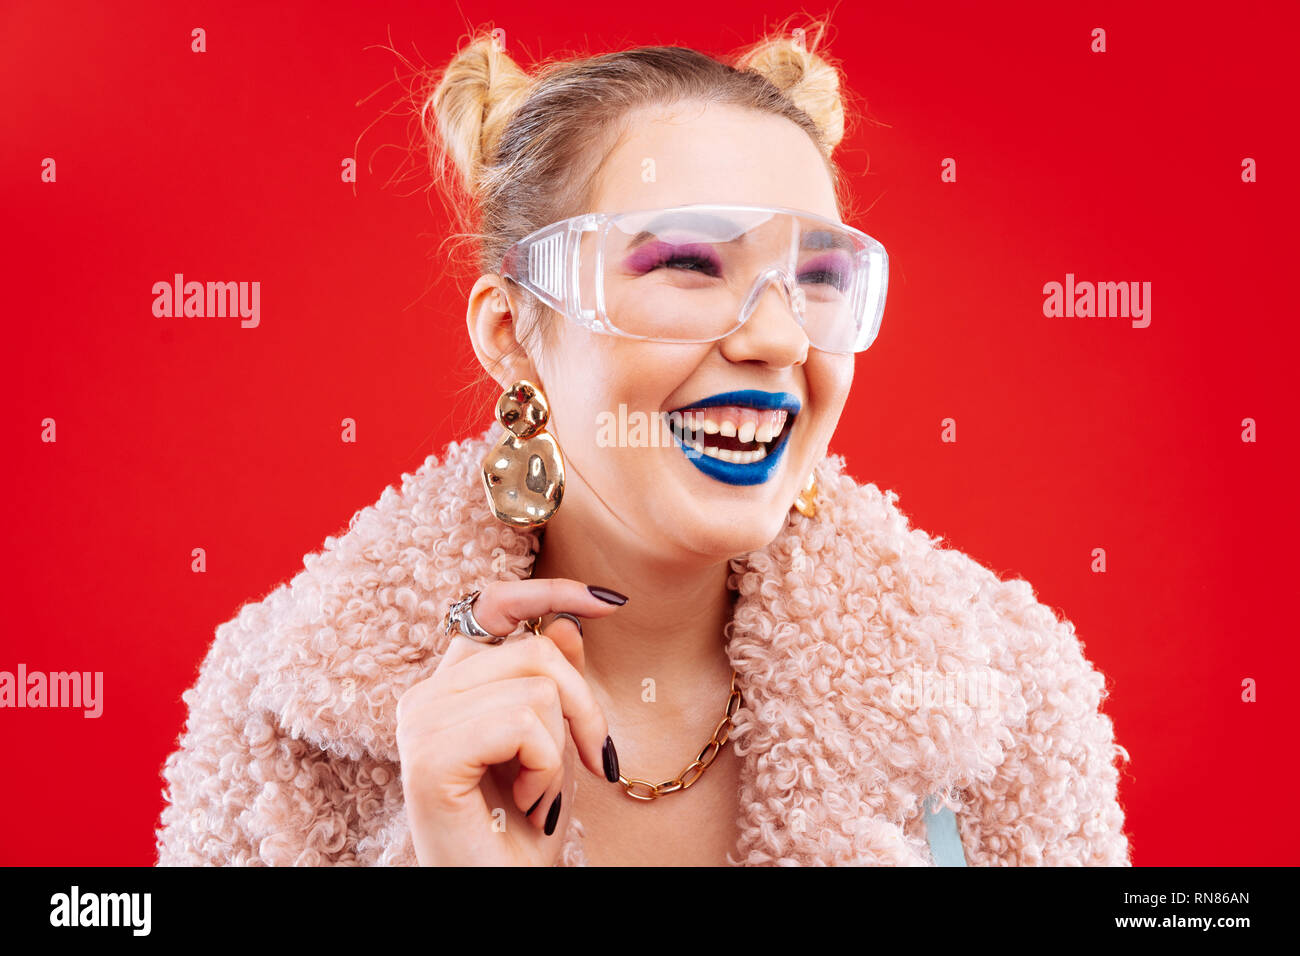 Cheerful woman with blue lips and pink eye shades laughing - Stock Image